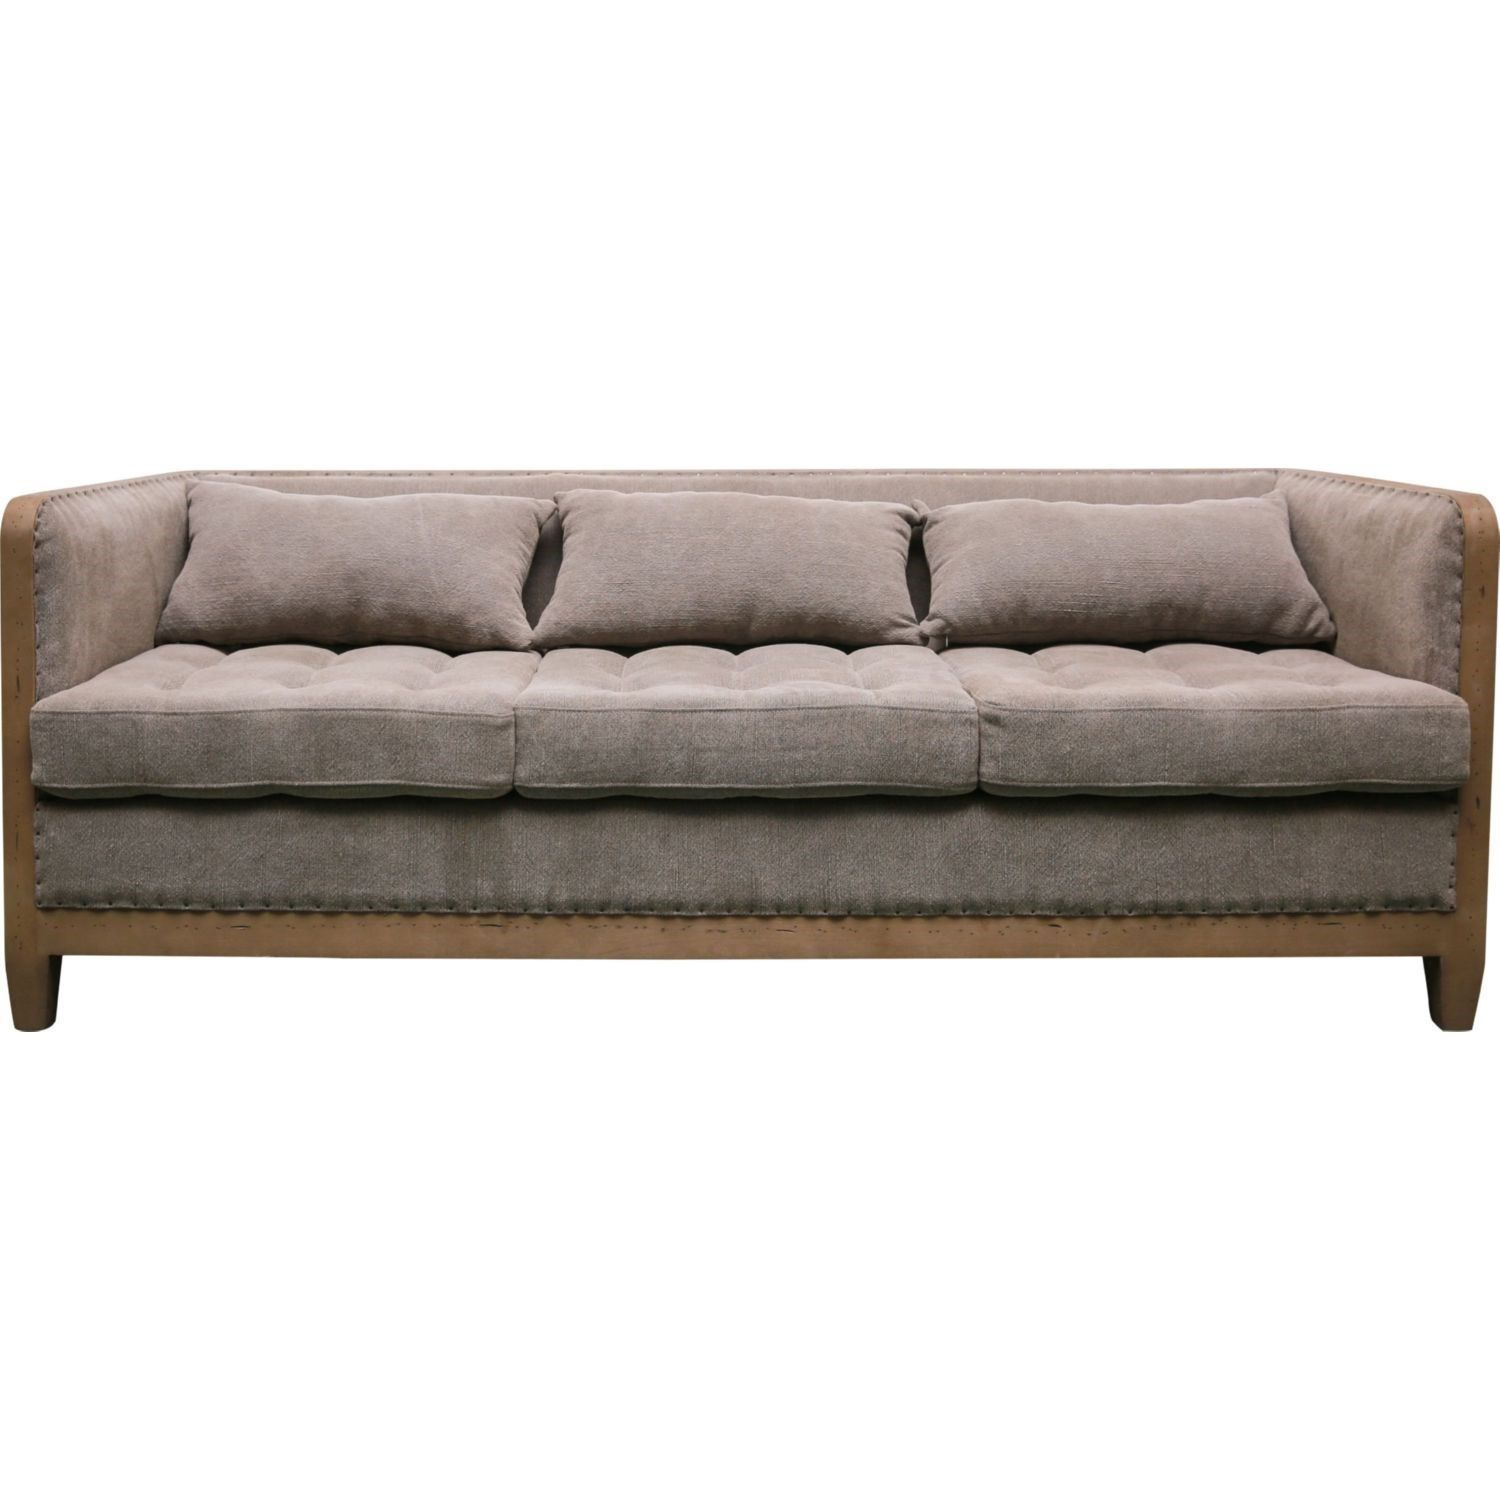 Moe's Home Collection Sx 1015 25 Cosette Sofa In Grey | Pinterest For Cosette Leather Sofa Chairs (View 4 of 25)